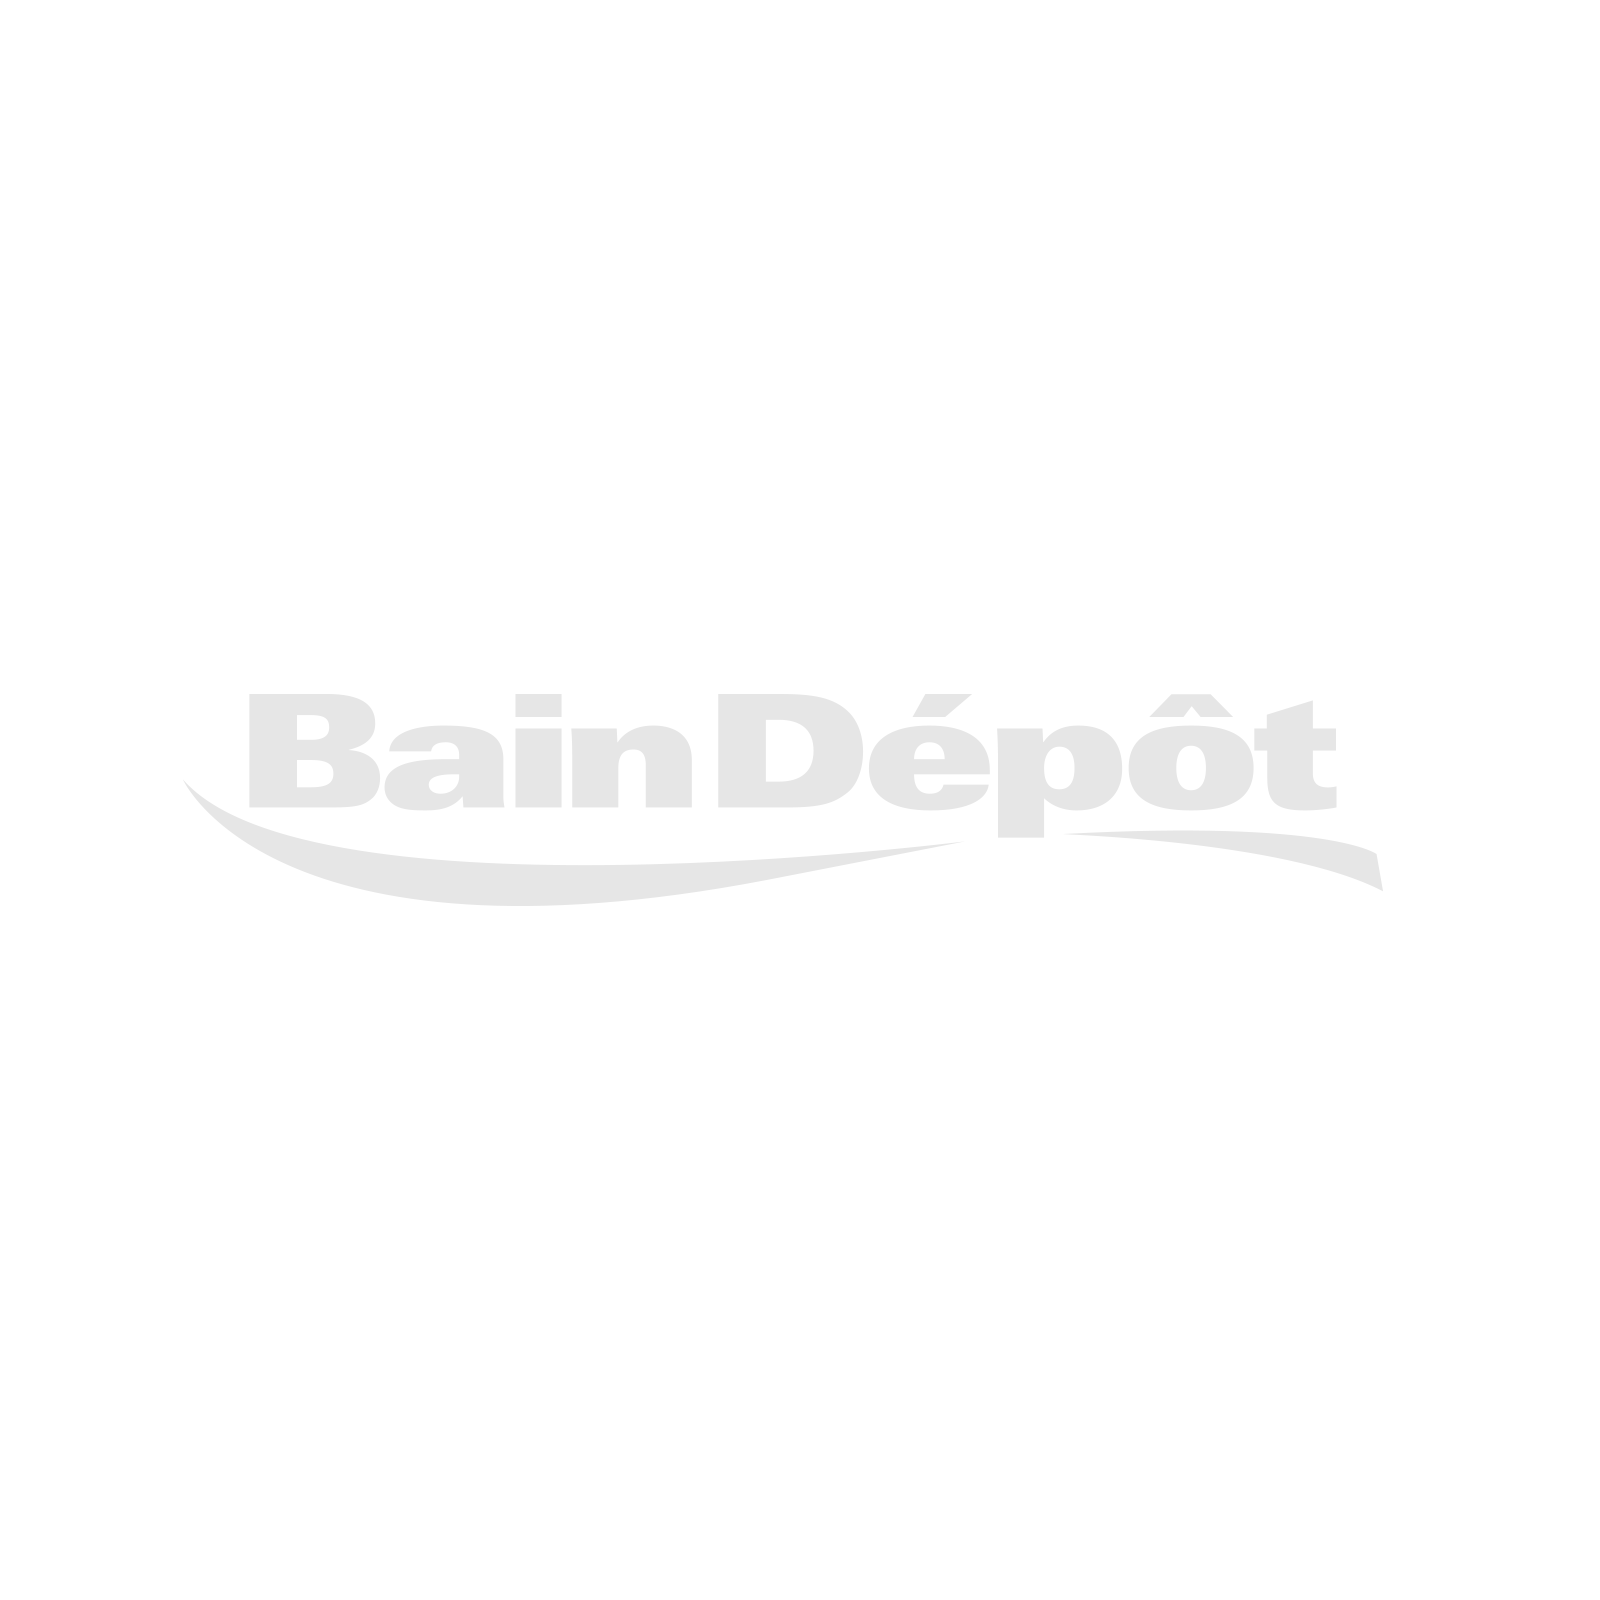 Rounded brushed nickel classic tub-shower faucet